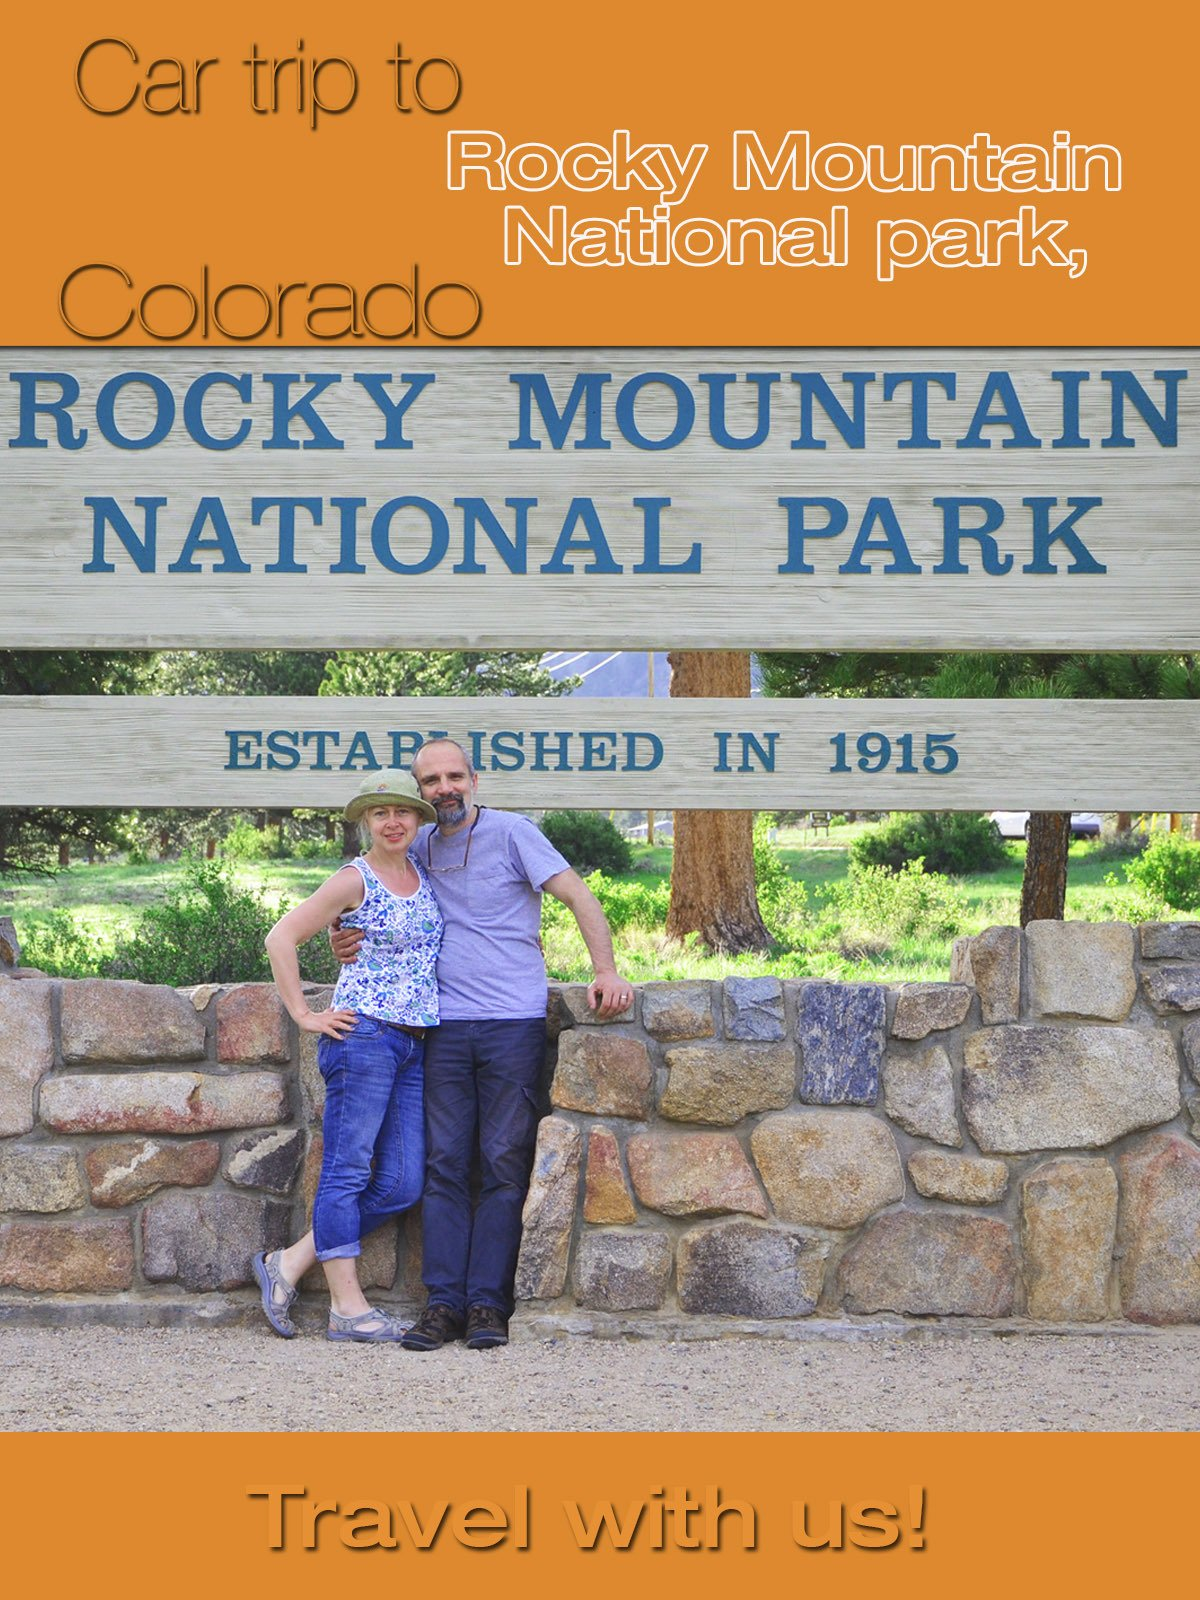 Car trip to Rocky Mountain National park, Colorado